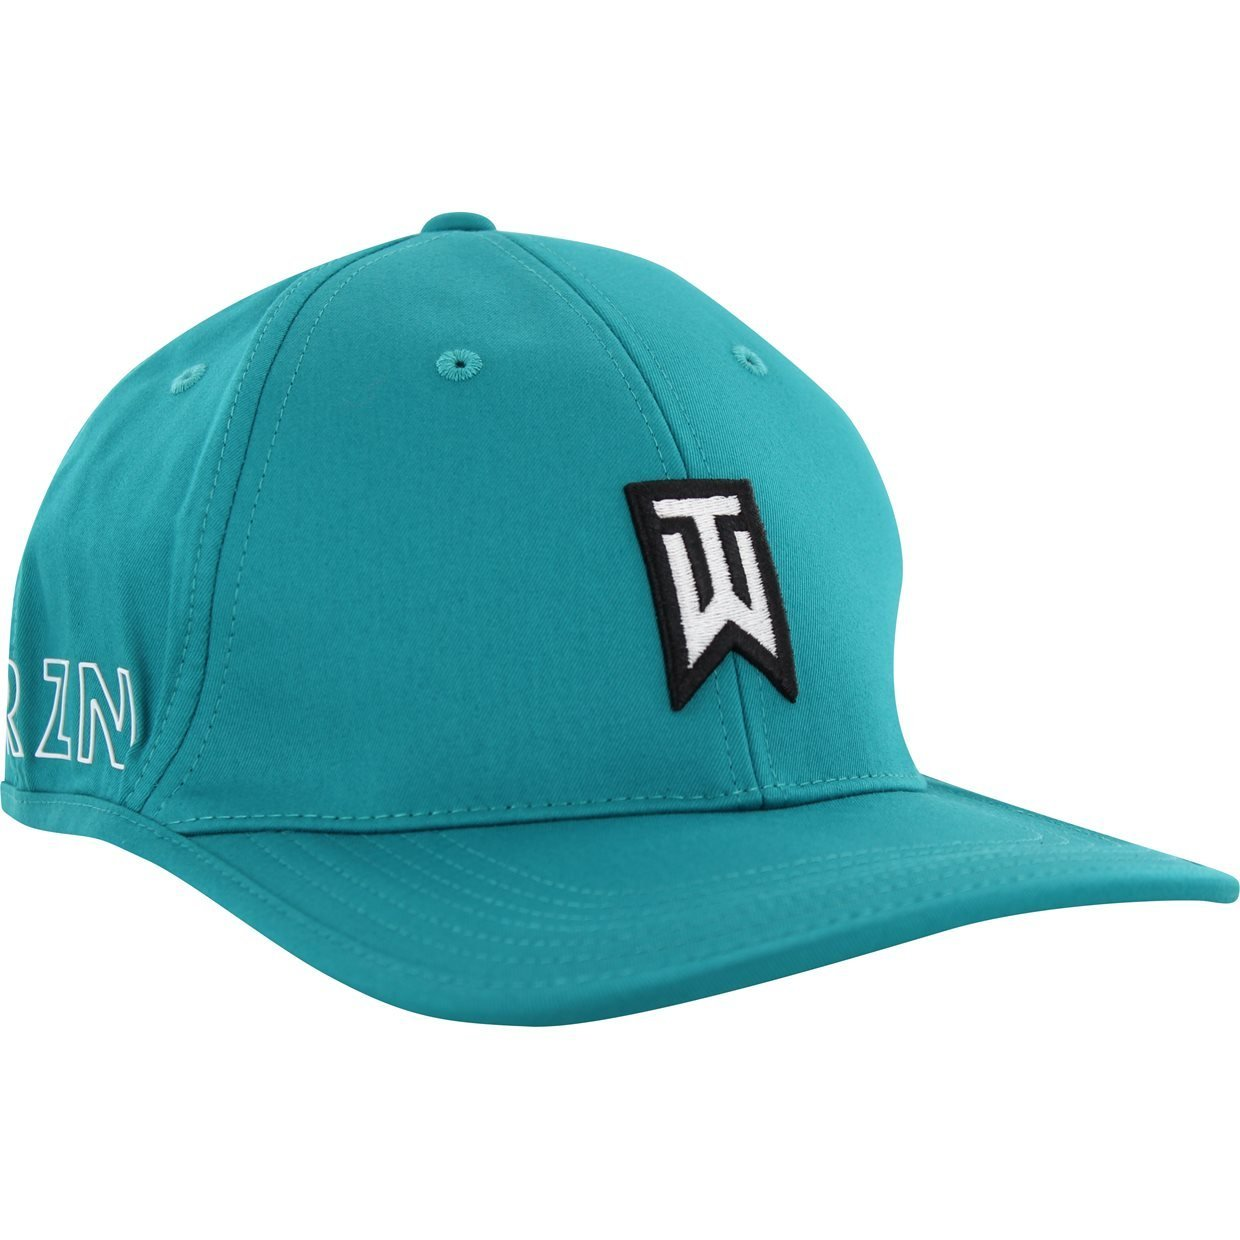 01e489e6507ab Nike TW Dri-Fit Ultralight Tour CLOSEOUT Cap